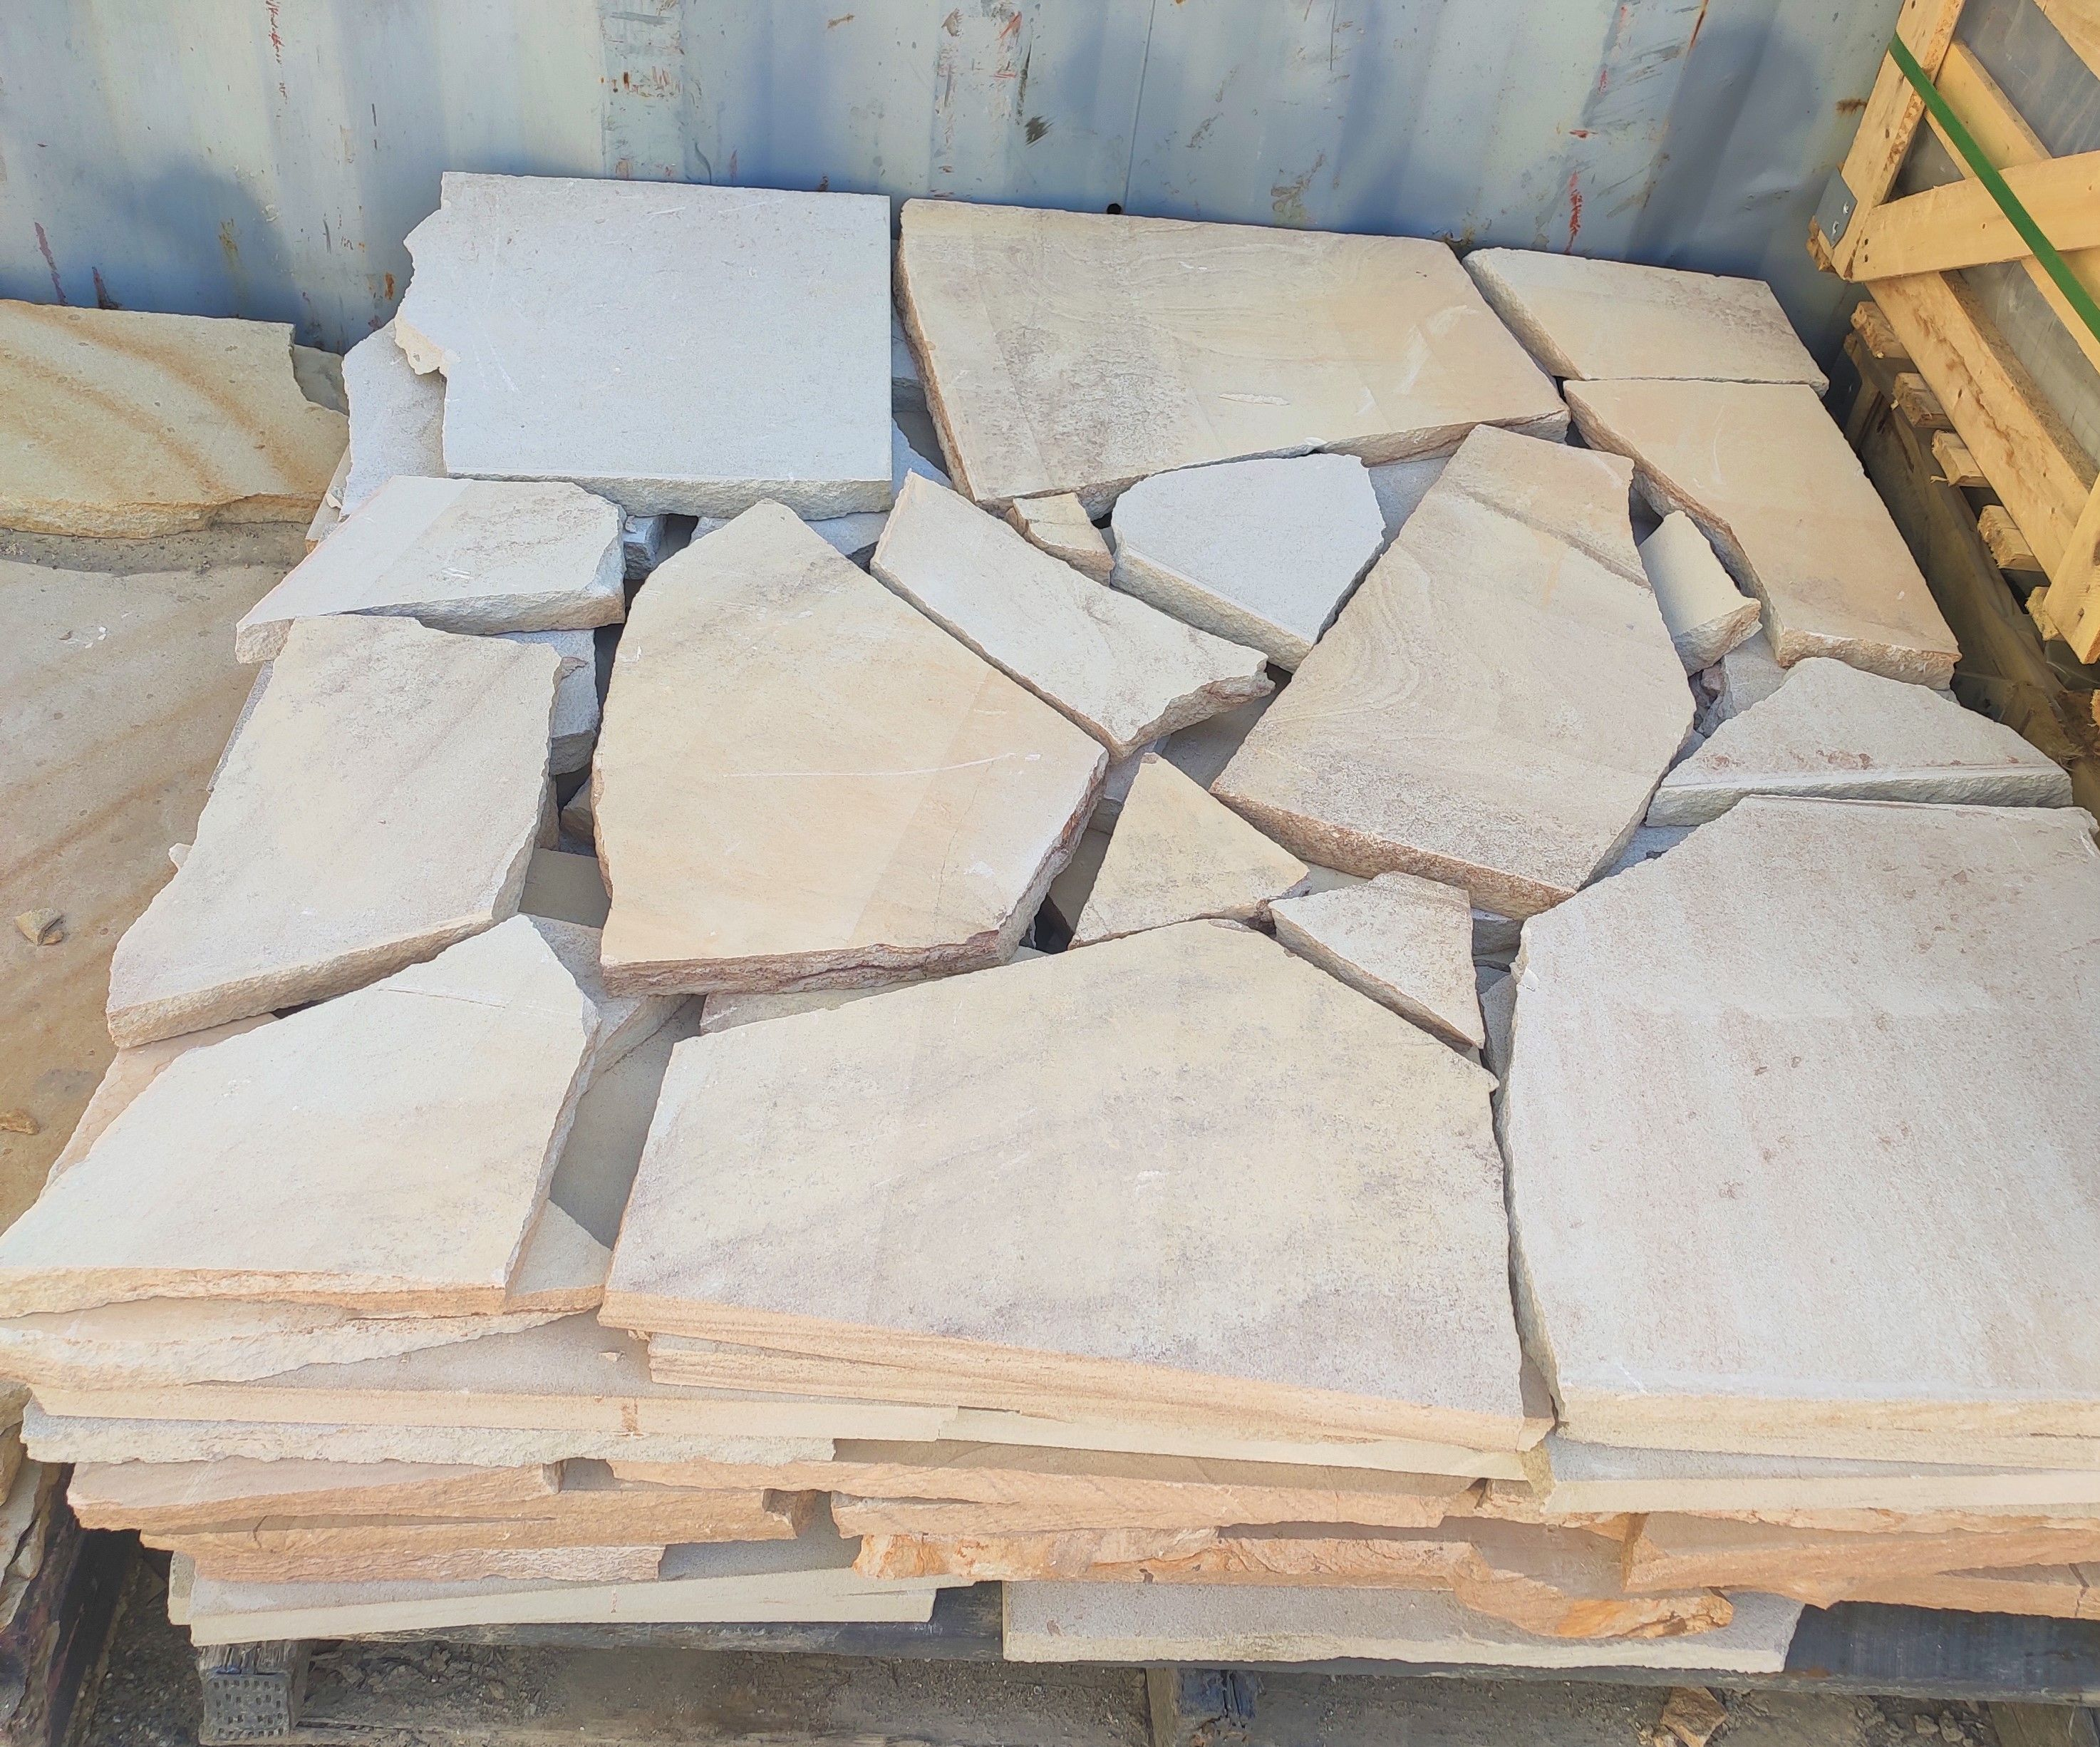 Sandstone Crazy Paving Crazy Paving Paving Stones Stone Tile Wall